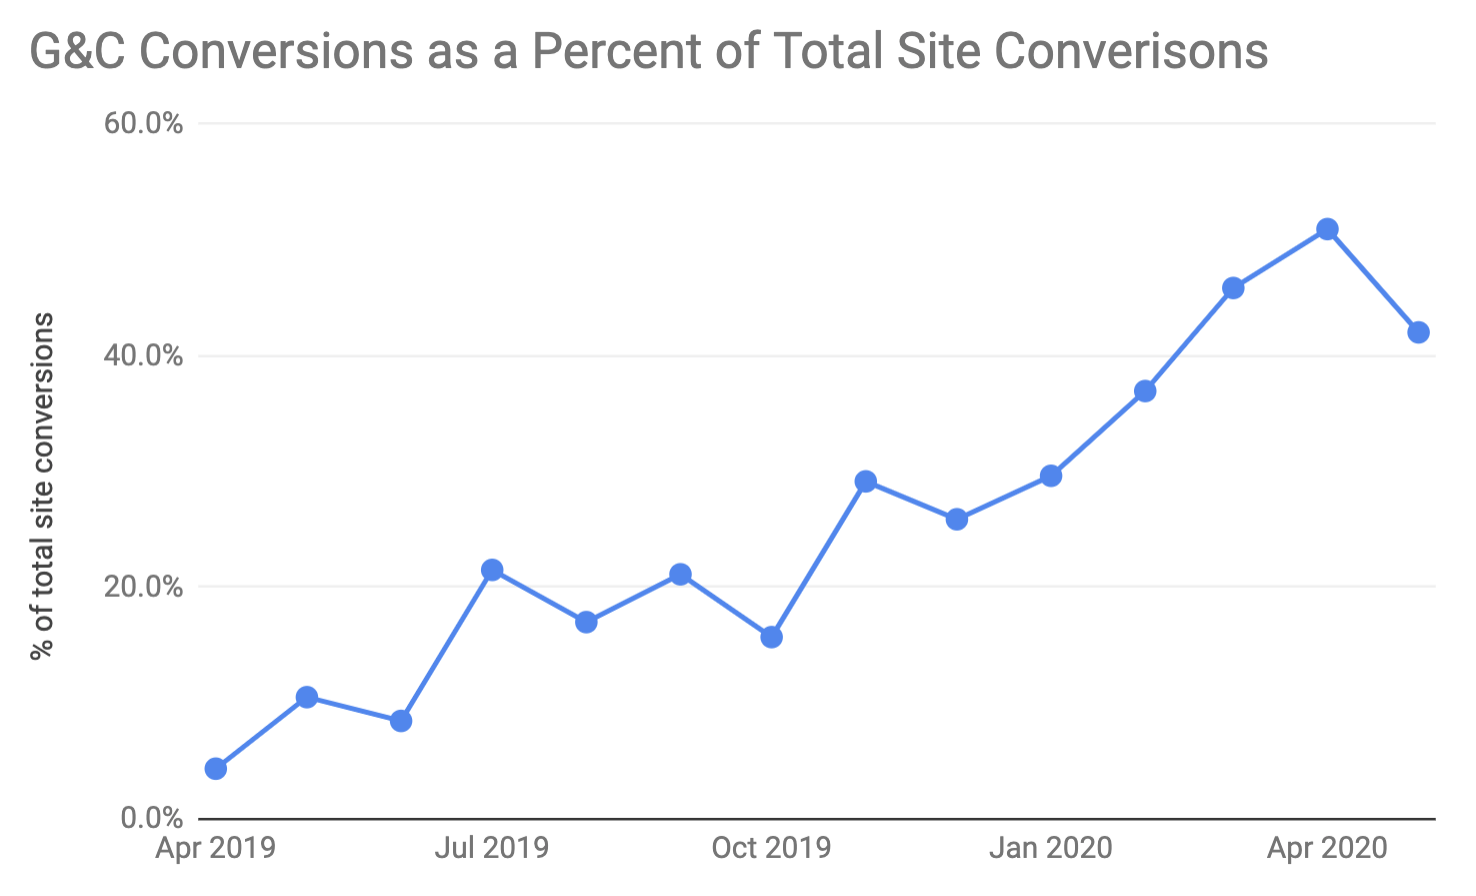 Grow and Convert as a percent of total site conversions